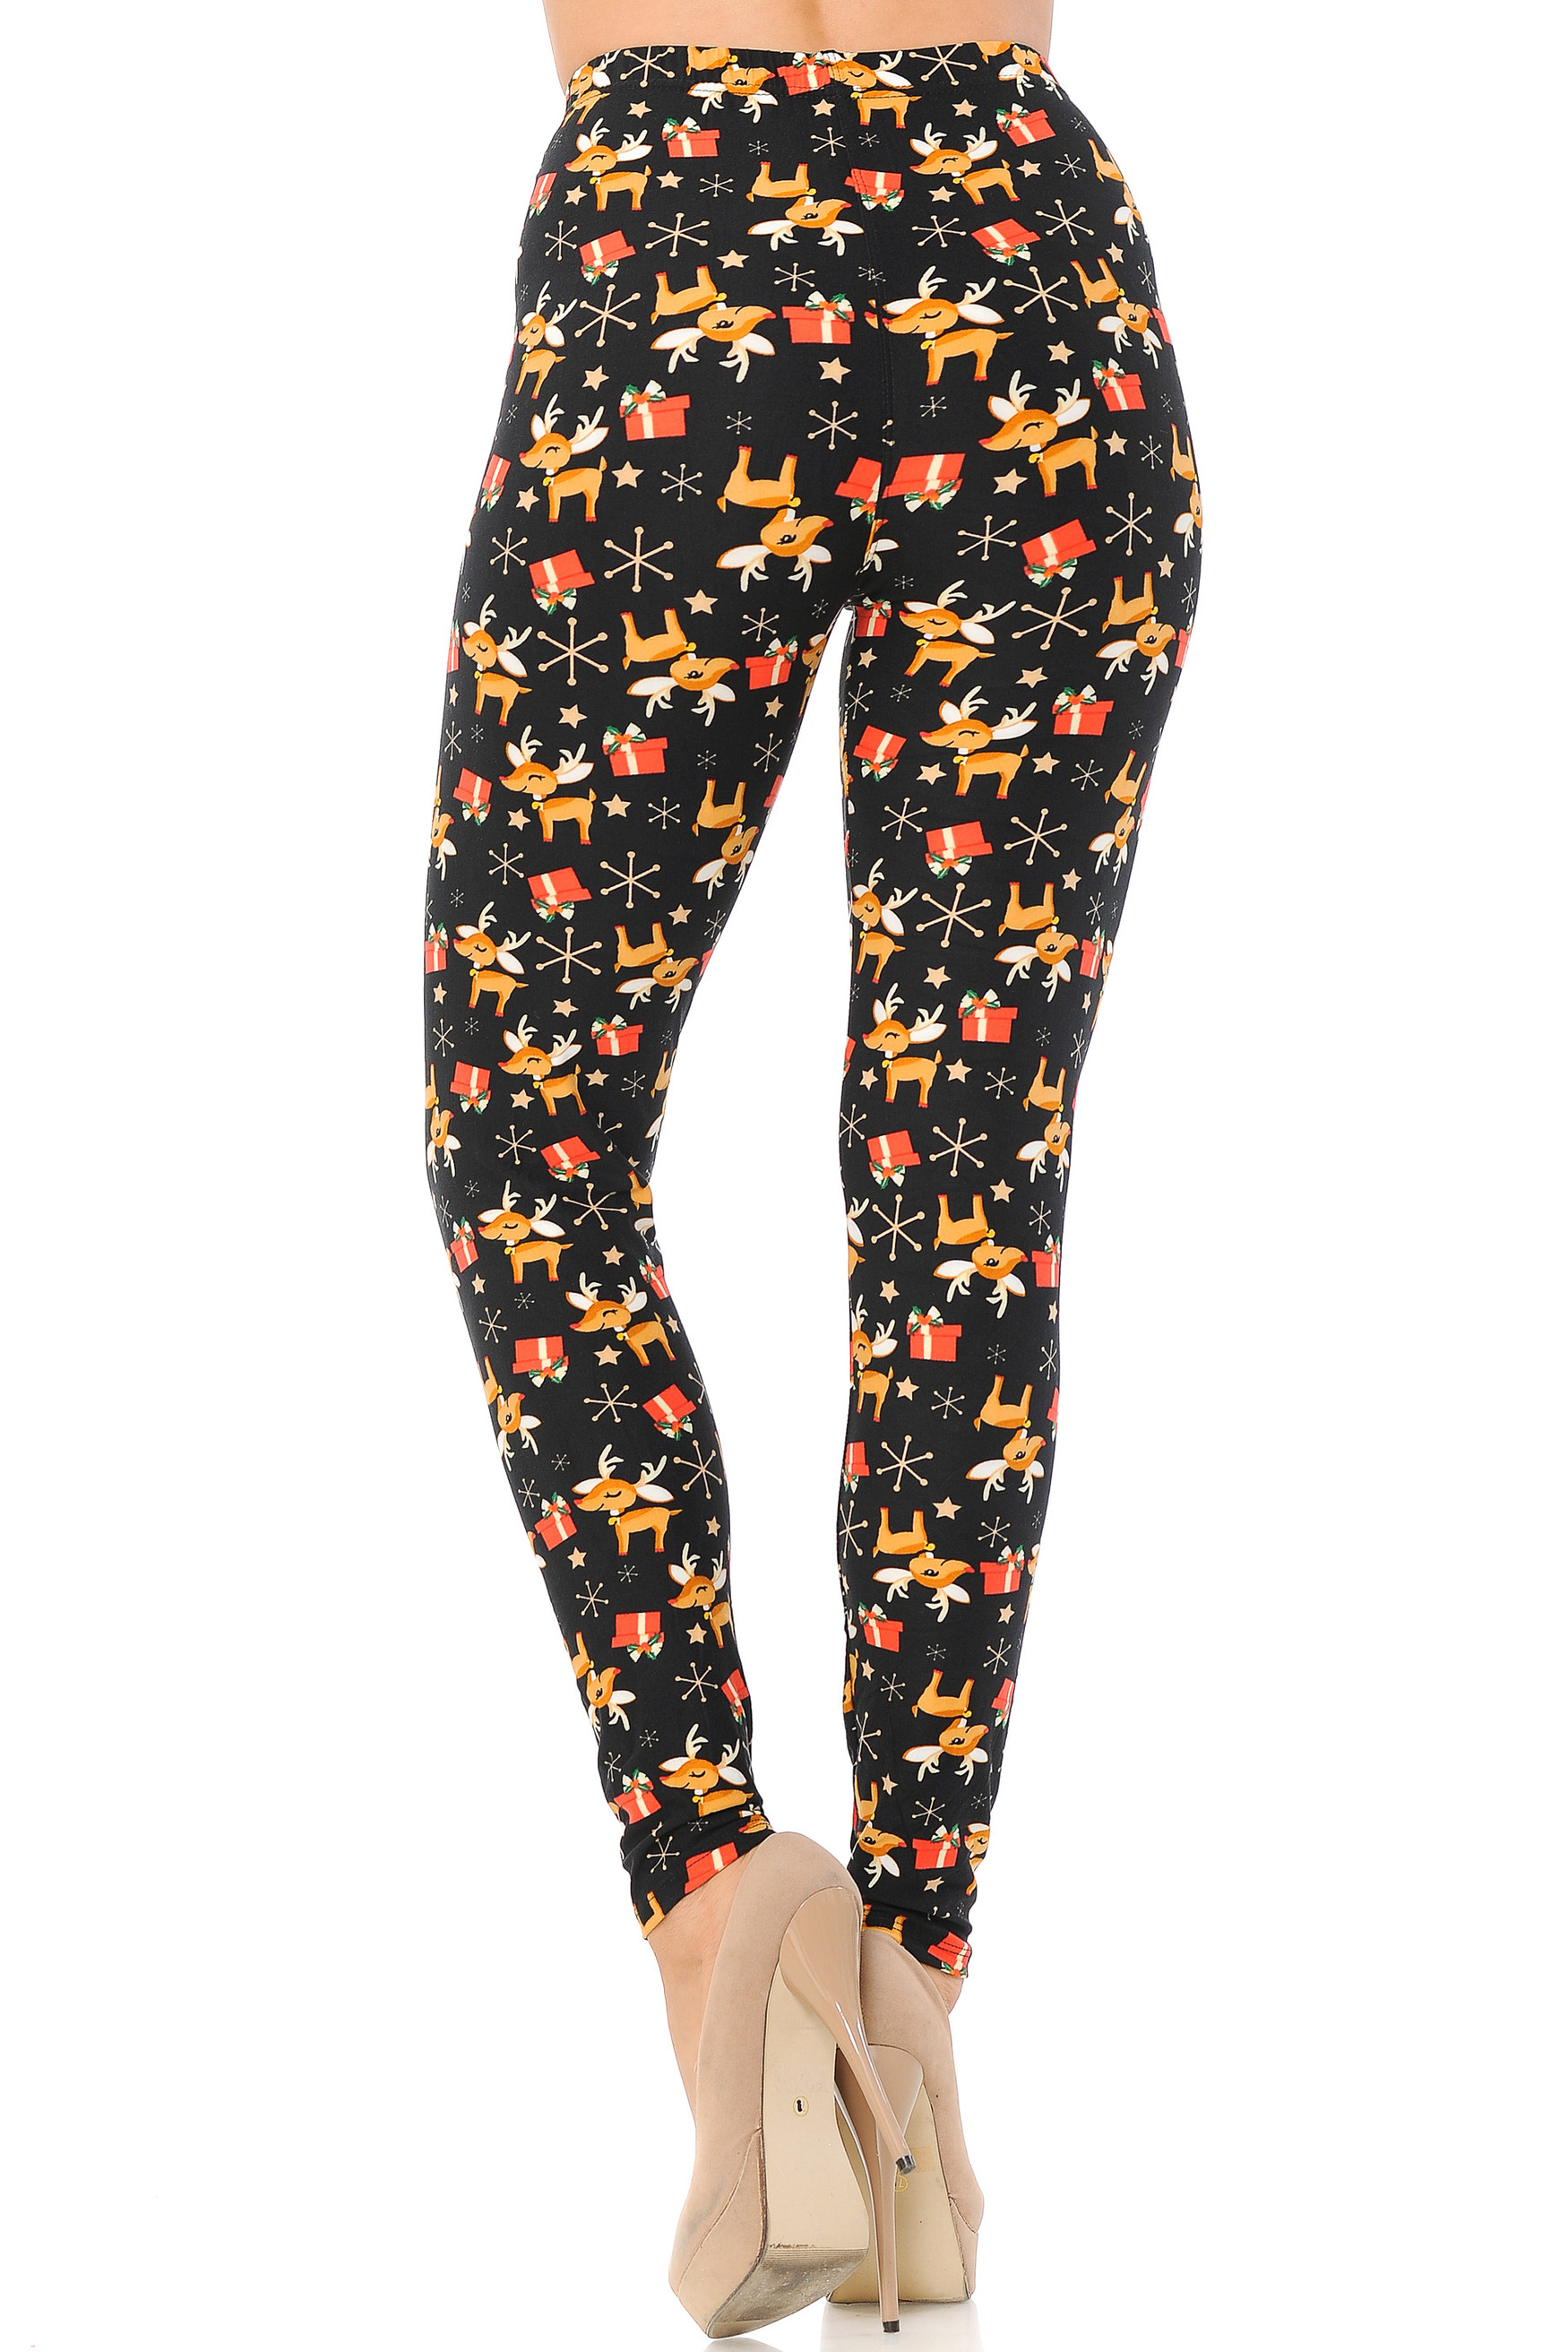 Brushed Presents and Baby Reindeer Christmas Plus Size LeggingsBrushed Presents and Baby Reindeer Christmas Plus Size Leggings